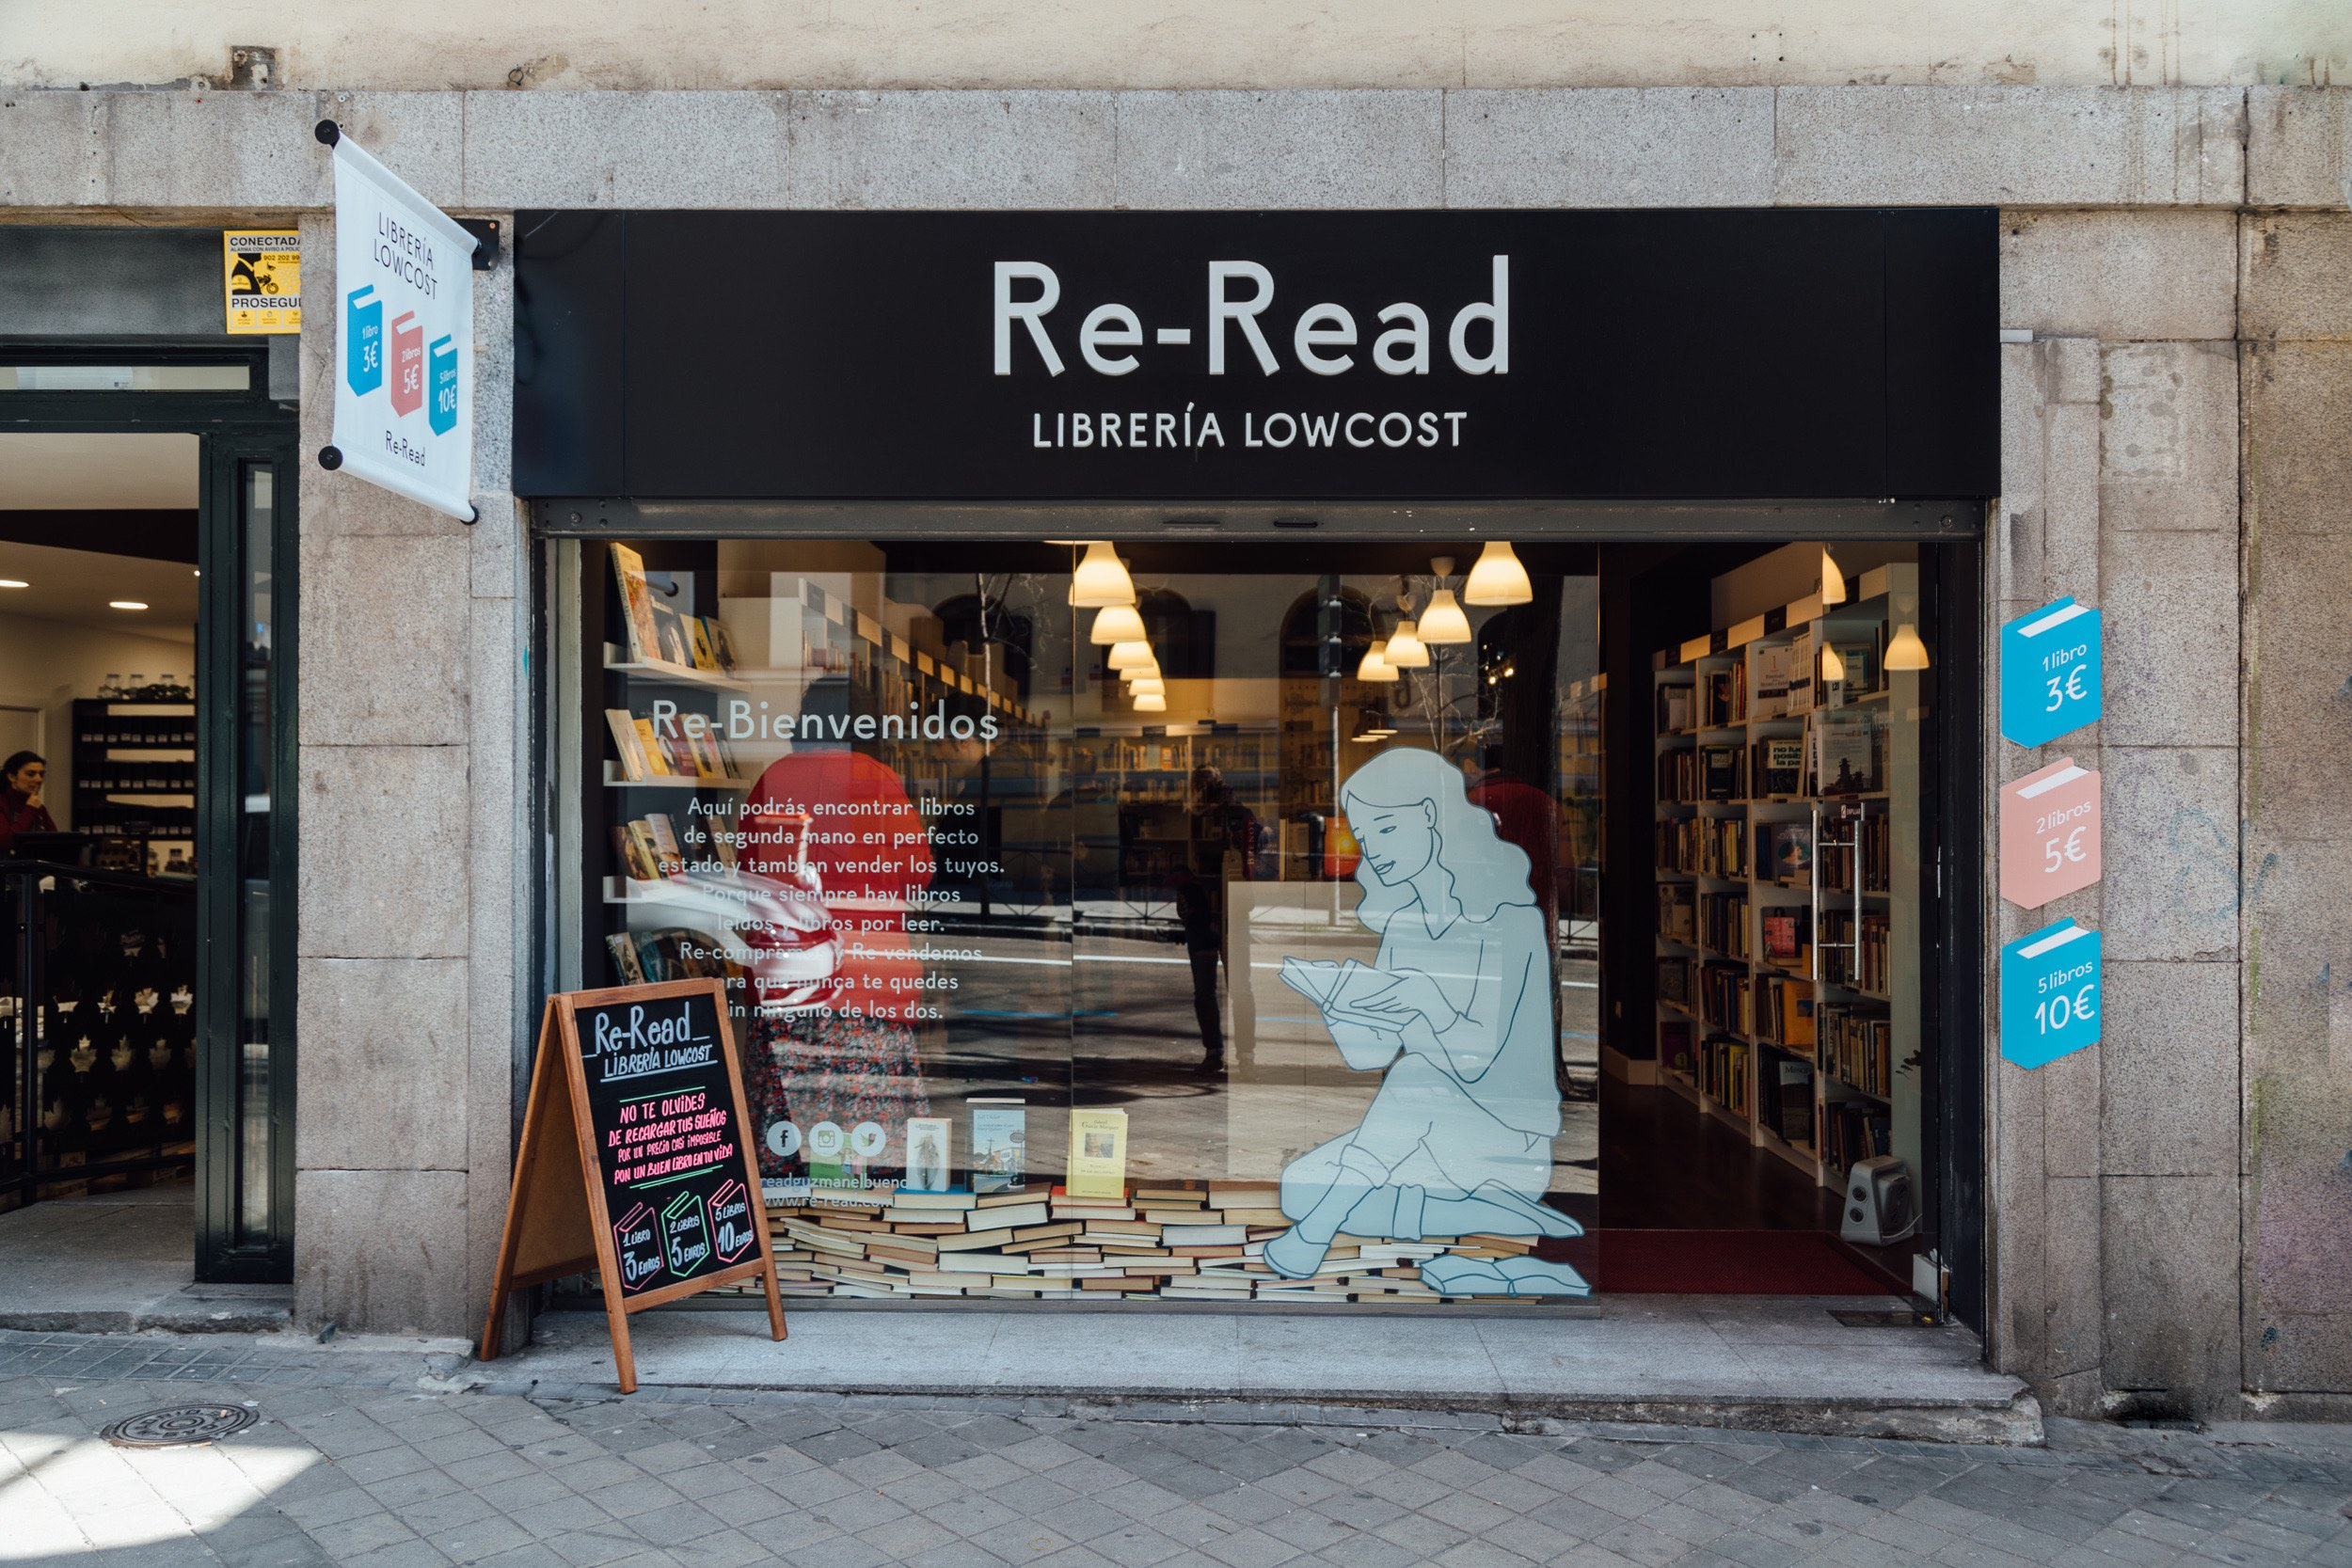 Re-Read - librerías de Madrid